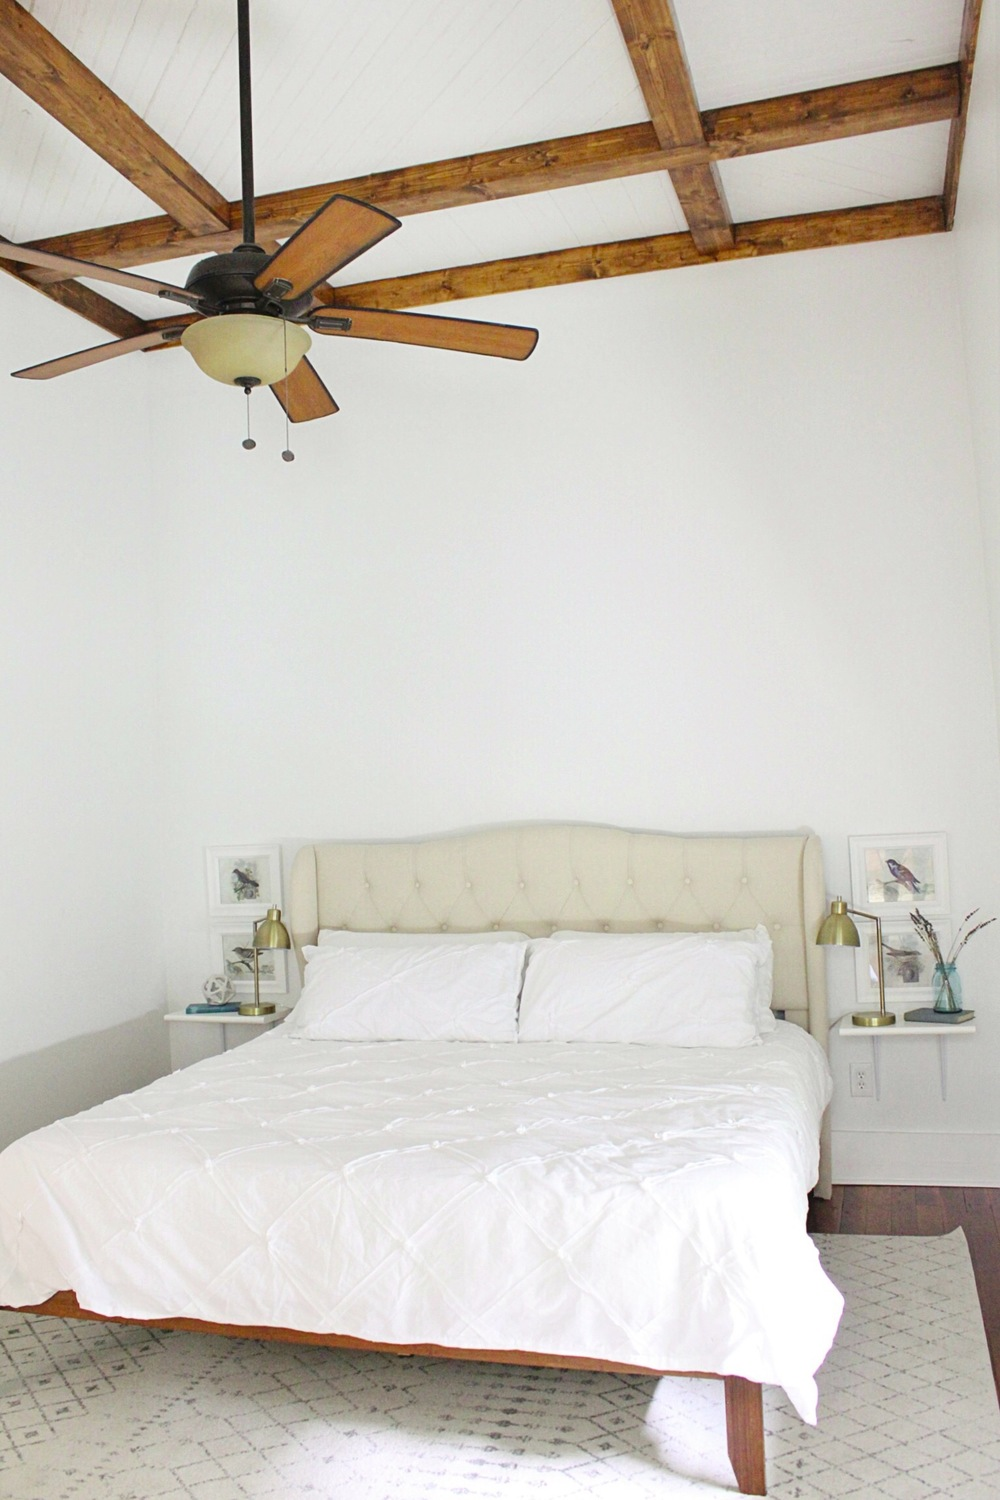 Headboard: Wayfar // Bed Frame: Wayfair // Rug: Rugsusa.com // Bedding: Home Goods // Lamps: Target // Nightstands: DIY